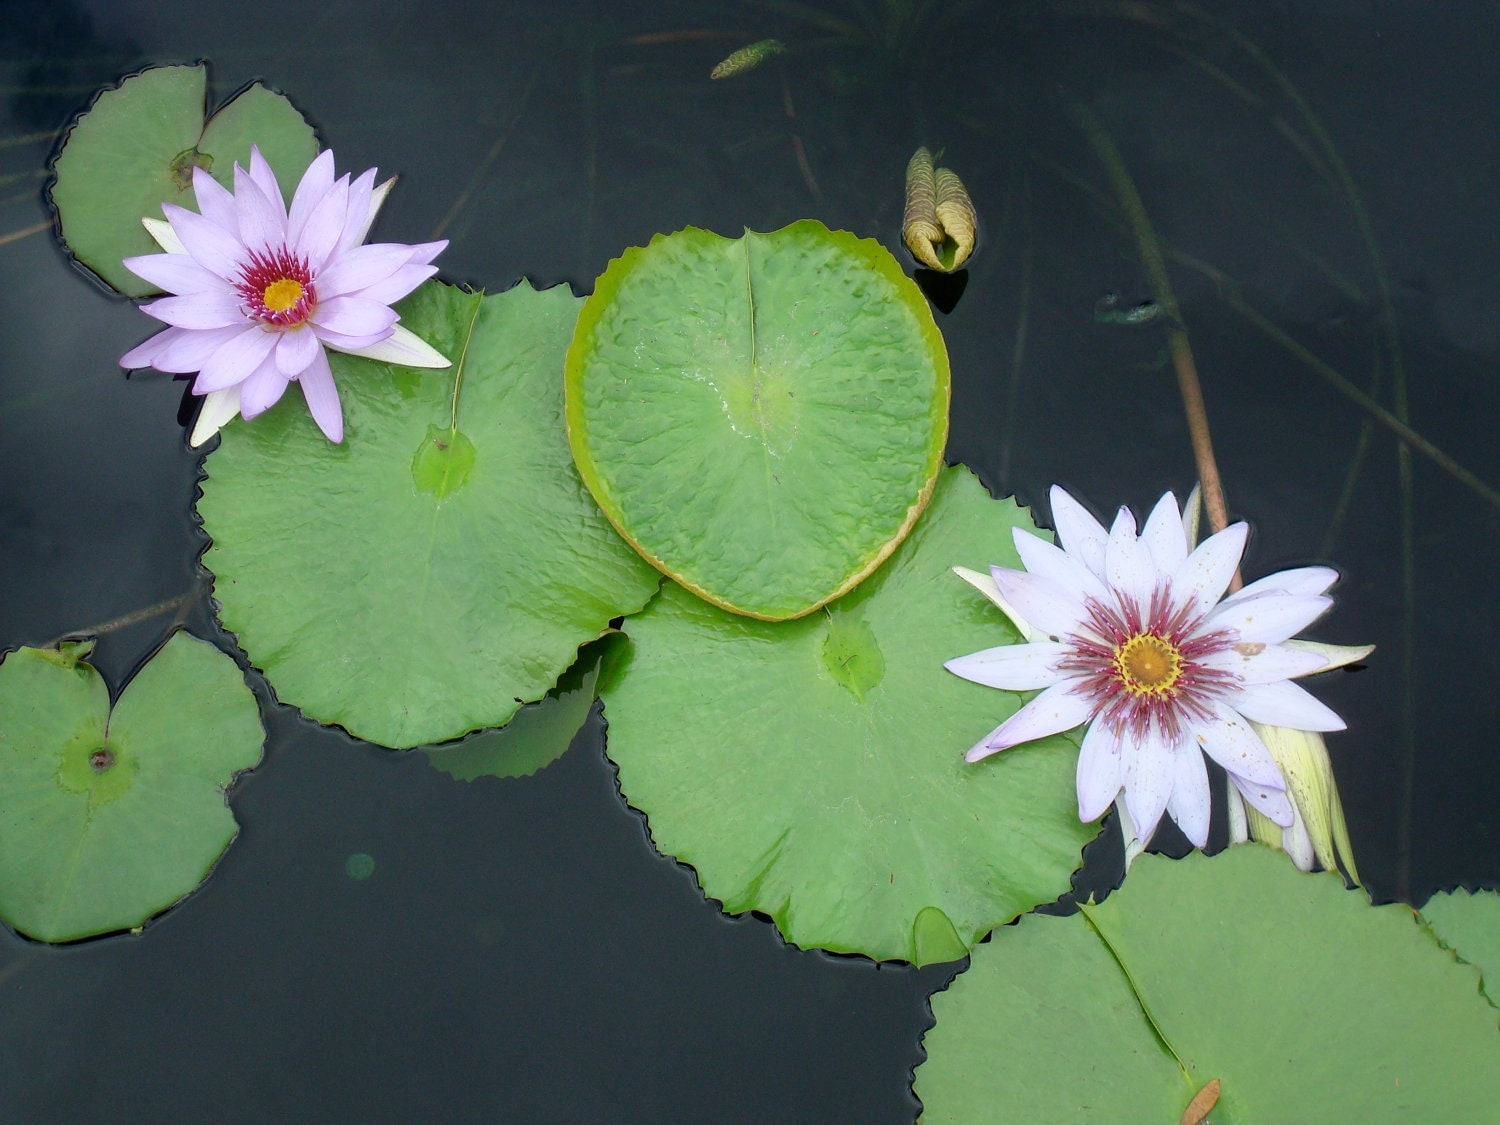 Lily Pad Heart and Flowers by TorchandPaintbrush on Etsy